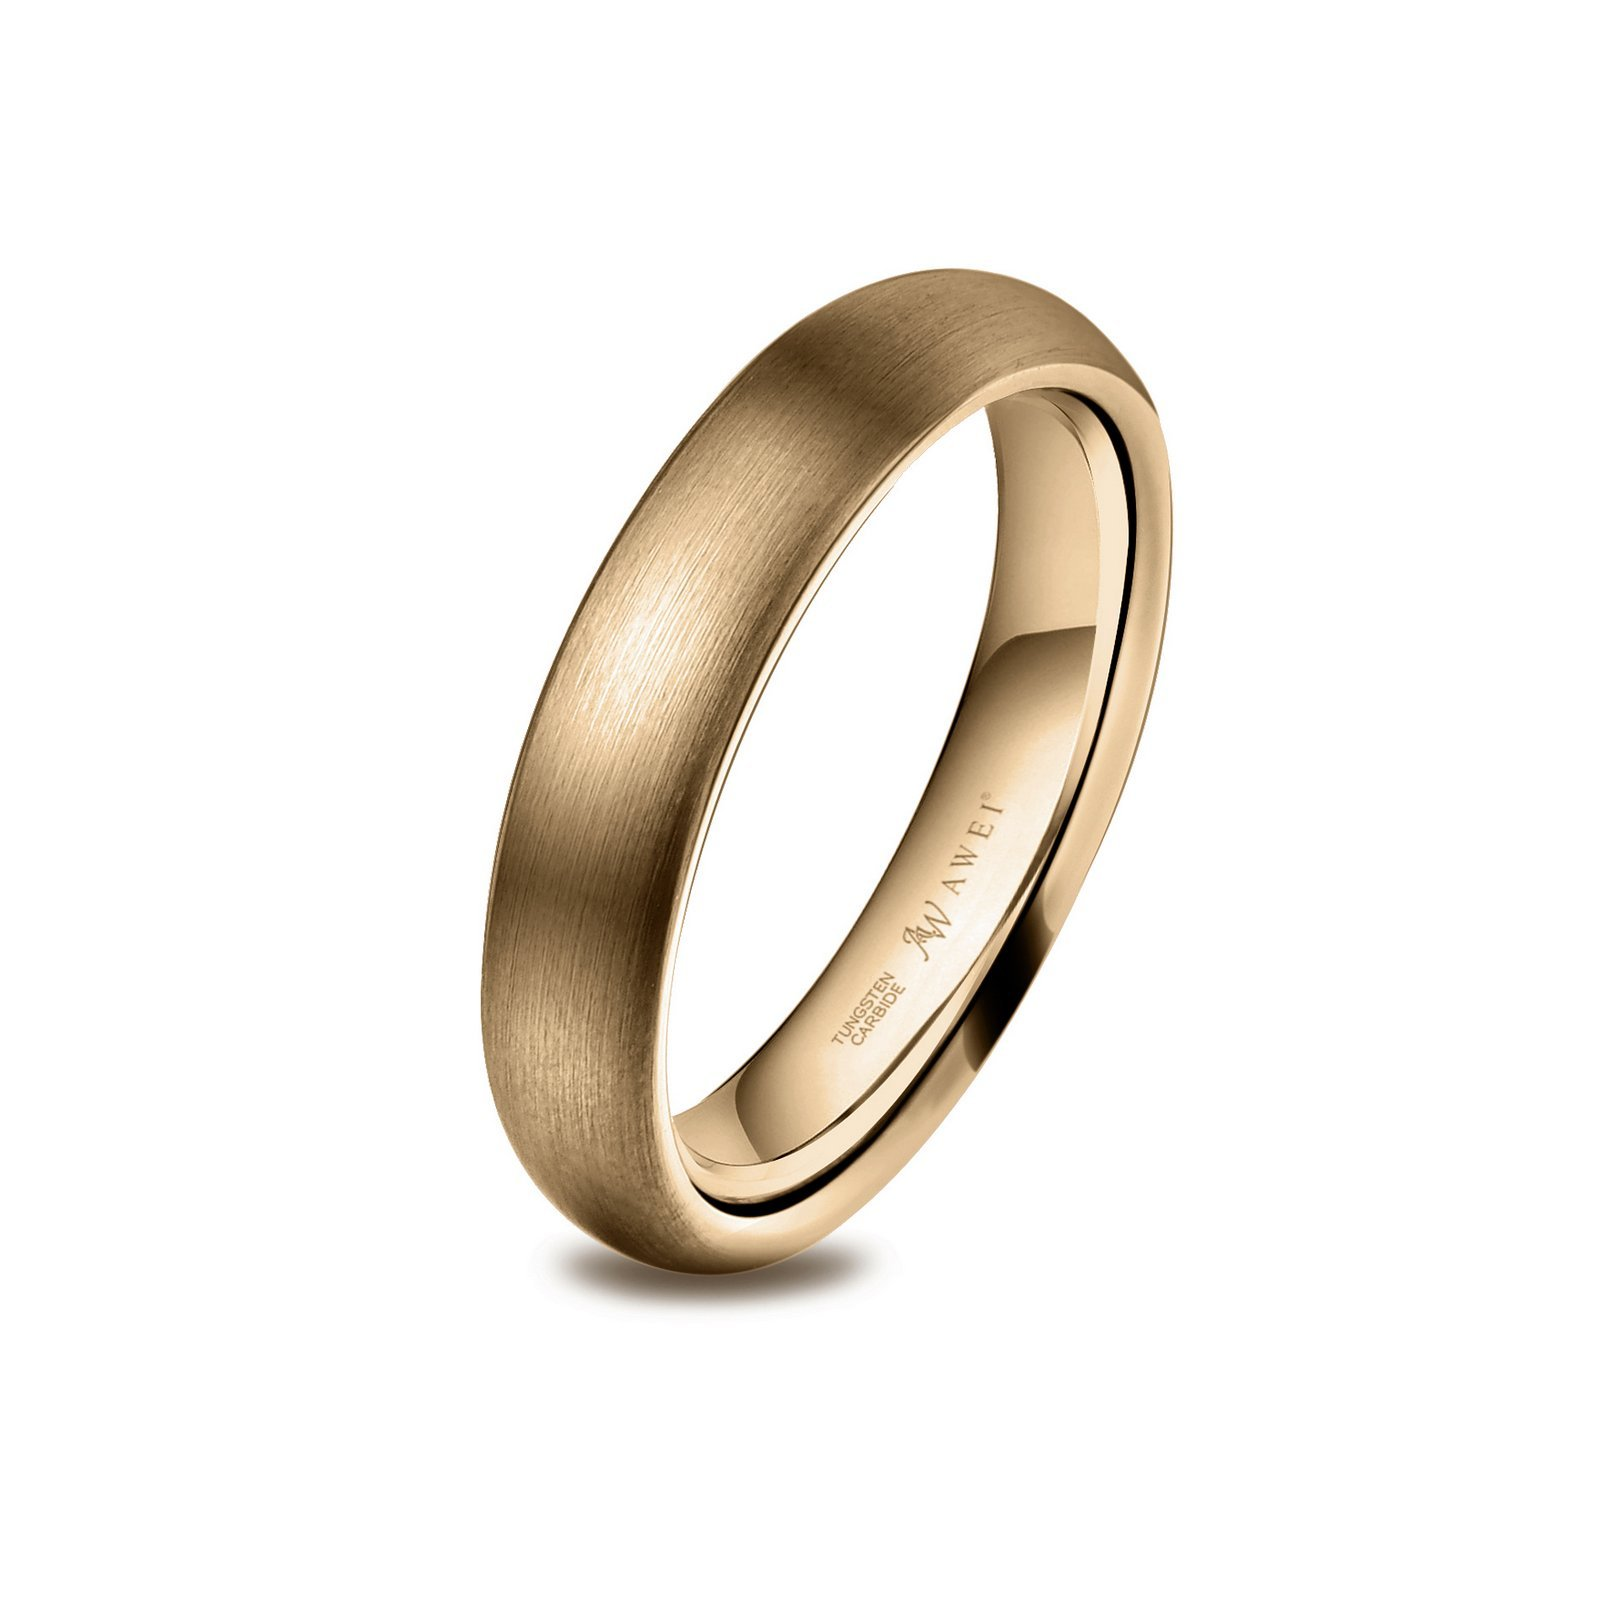 AW Tungsten Rings Matte Brushed Wedding Band - Gold Unisex Comfort Fit Engagement Ring 4mm, Size 8